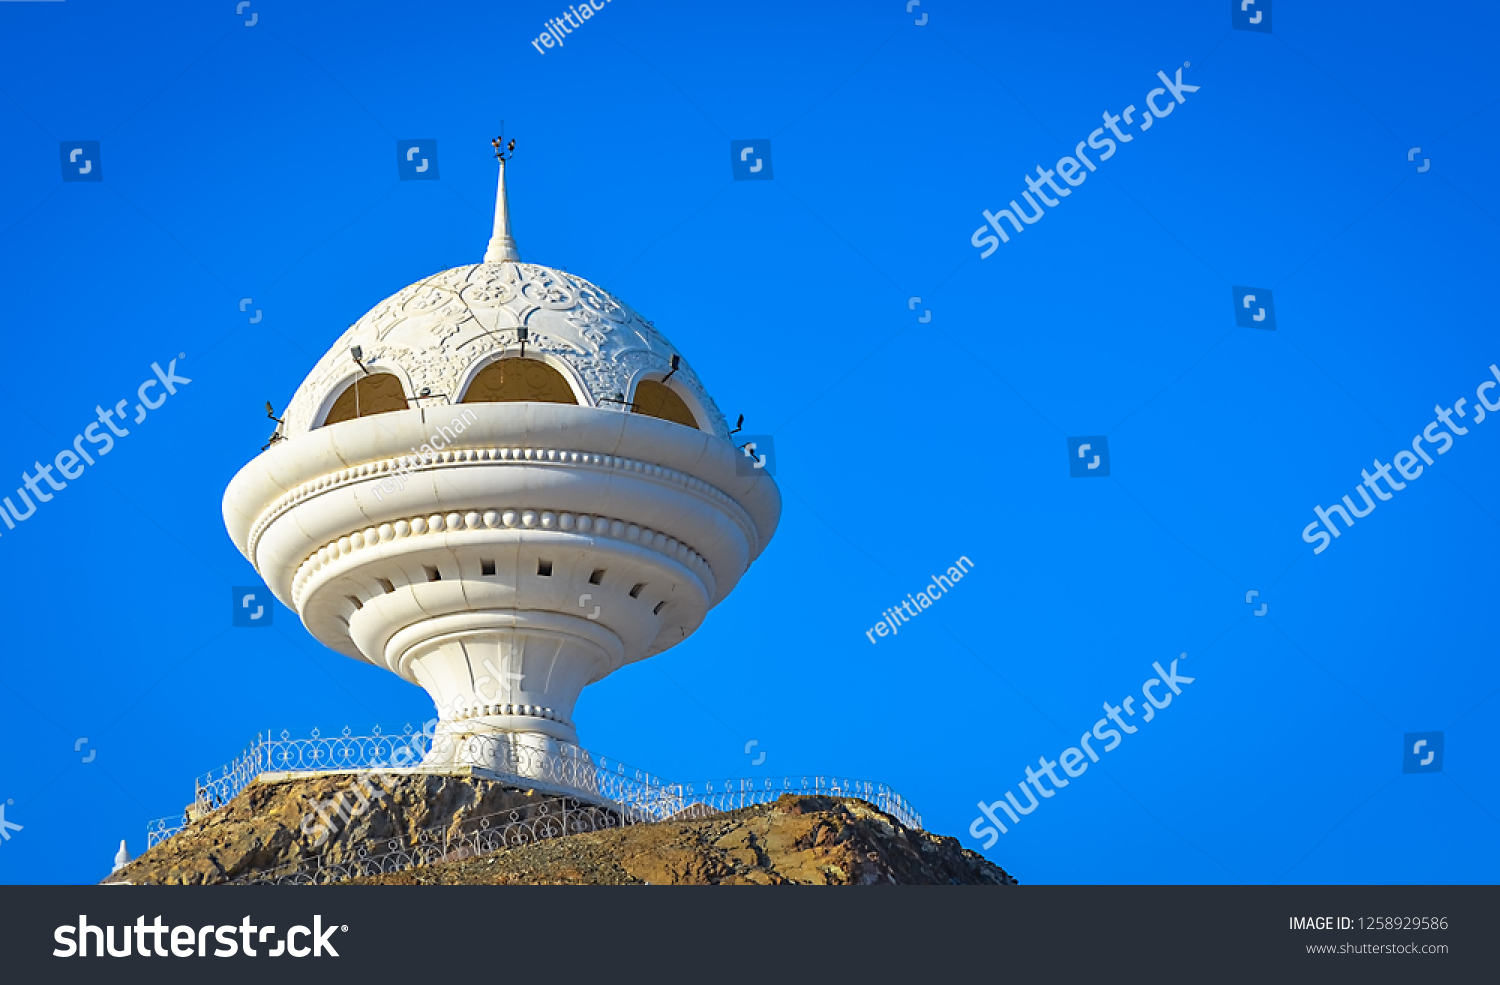 Giant frankincense burner monument in Riyam Park, Muscat, Oman with a clear blue sky as background.